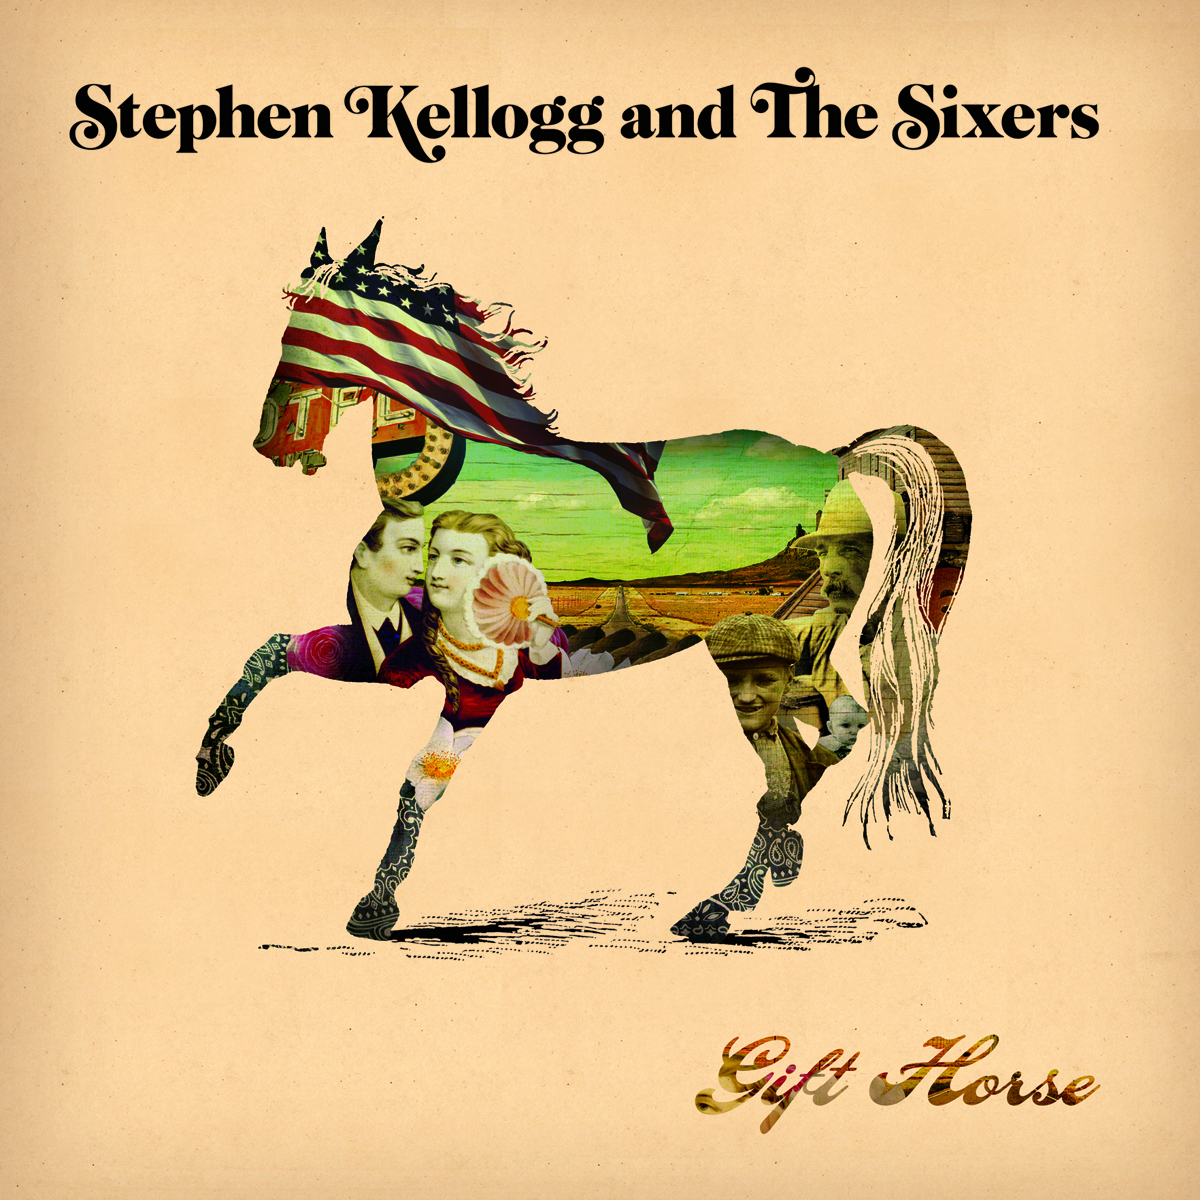 Album preview stephen kellogg the sixers gift horse american album preview stephen kellogg the sixers gift horse american songwriter negle Images